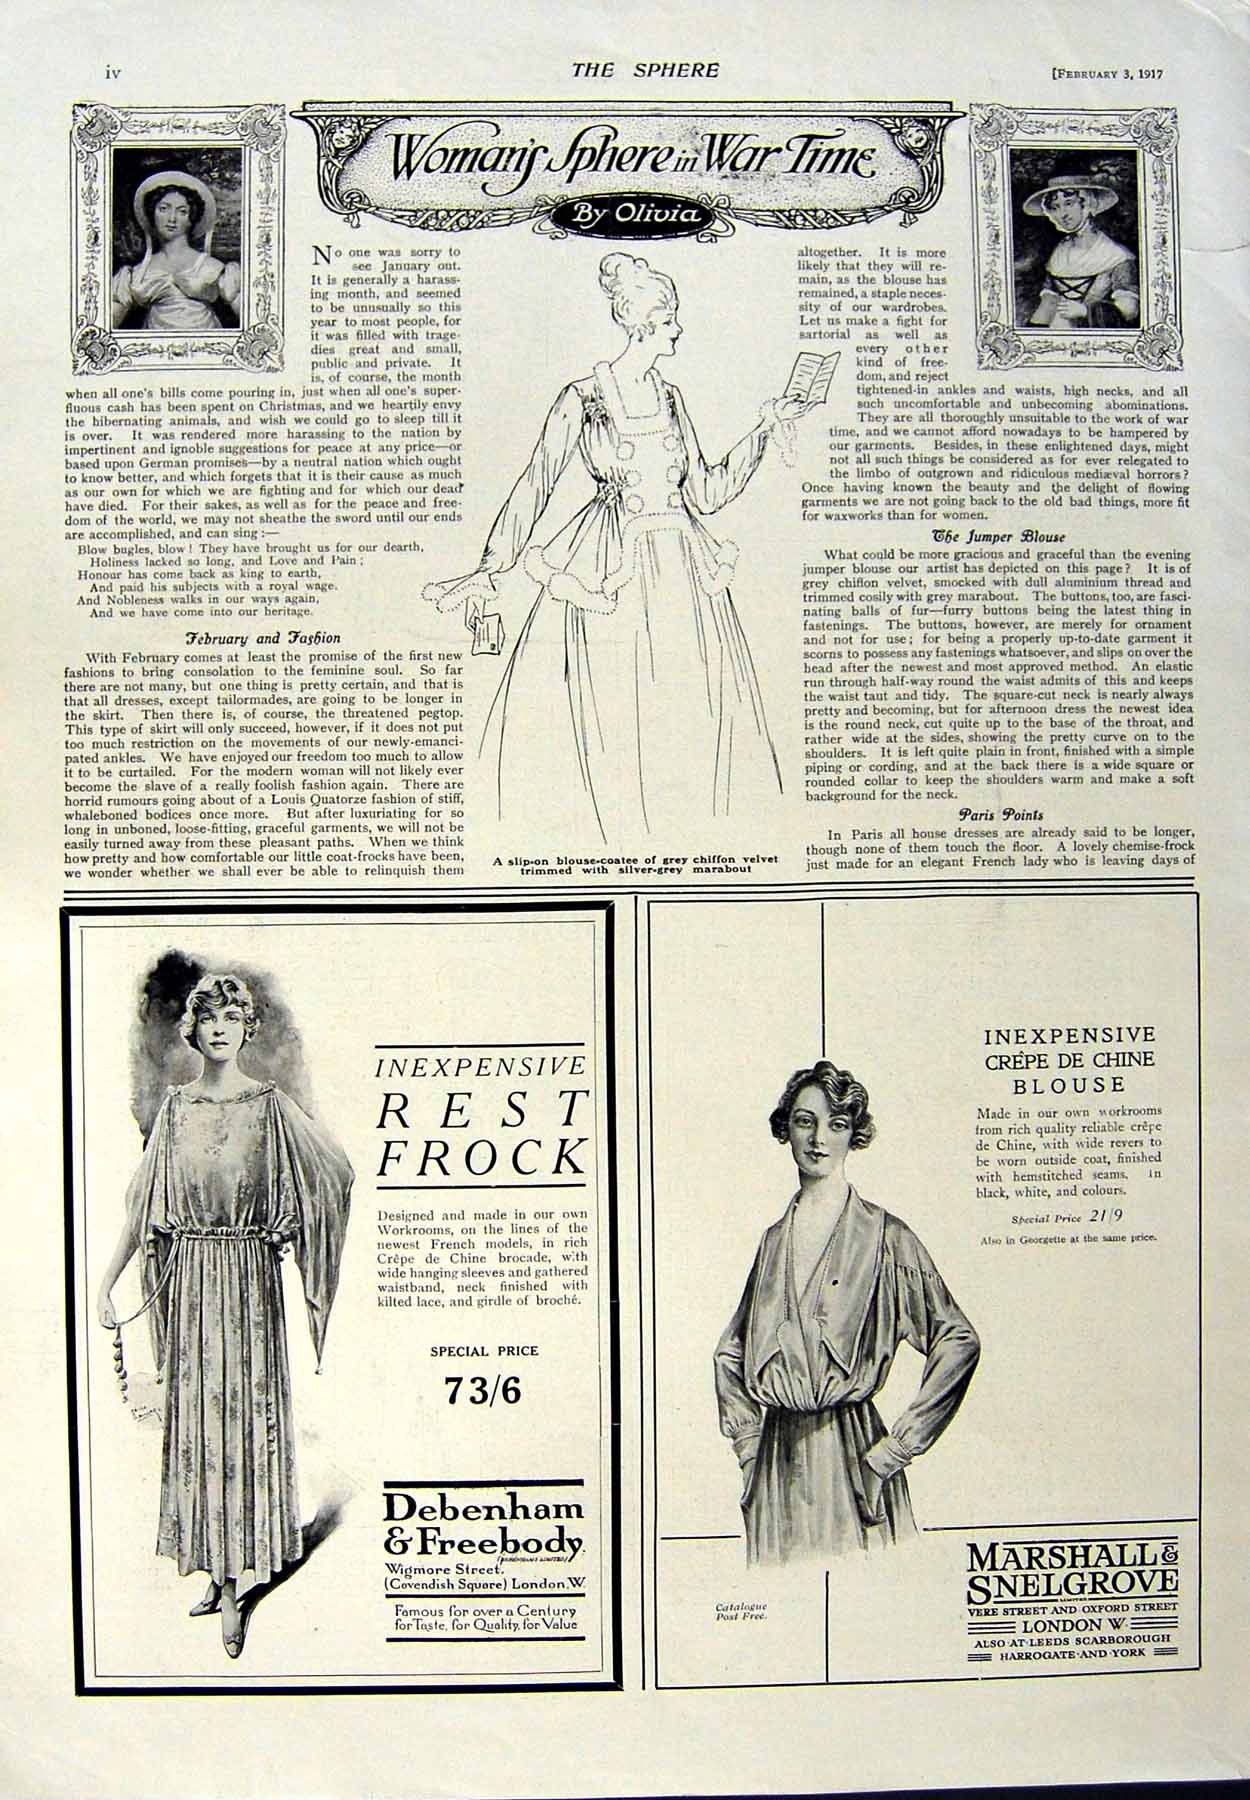 Old-Vintage-Print-Trench-Coat-Advertisement-1917-Buick-Car-Sunbeam-Frock-20th